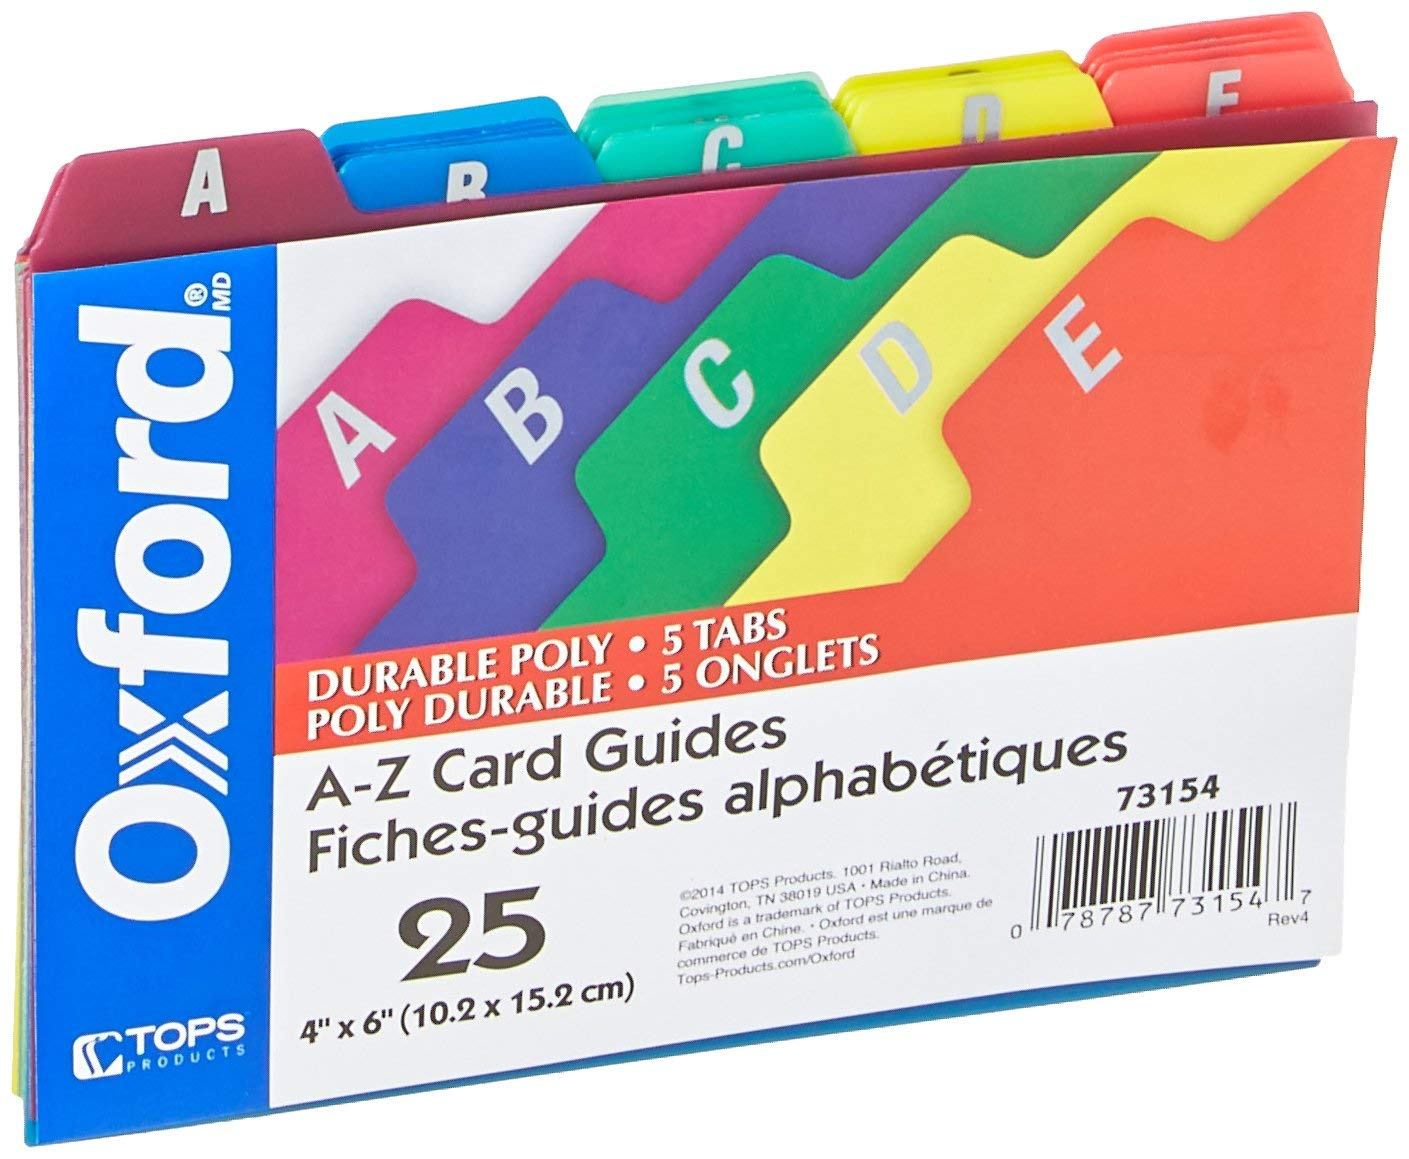 Oxford Poly Index Card Guides, Alphabetical, A-Z, Assorted Colors, 4'' x 6'' Size, 25 Guides per Set (73154) (2 Set)